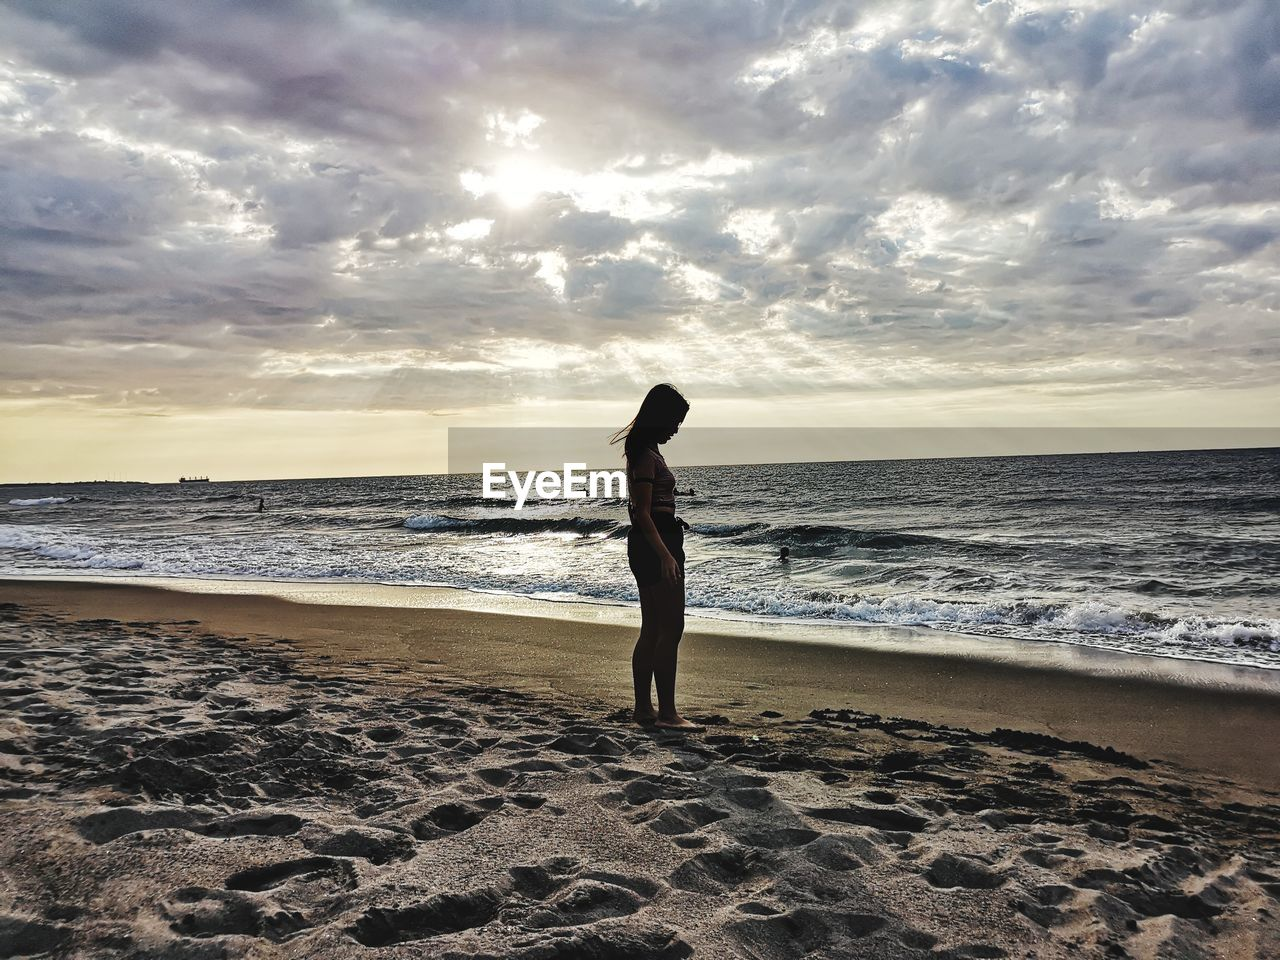 sea, beach, land, water, sky, horizon over water, horizon, beauty in nature, scenics - nature, one person, cloud - sky, lifestyles, real people, leisure activity, sand, standing, nature, sunset, outdoors